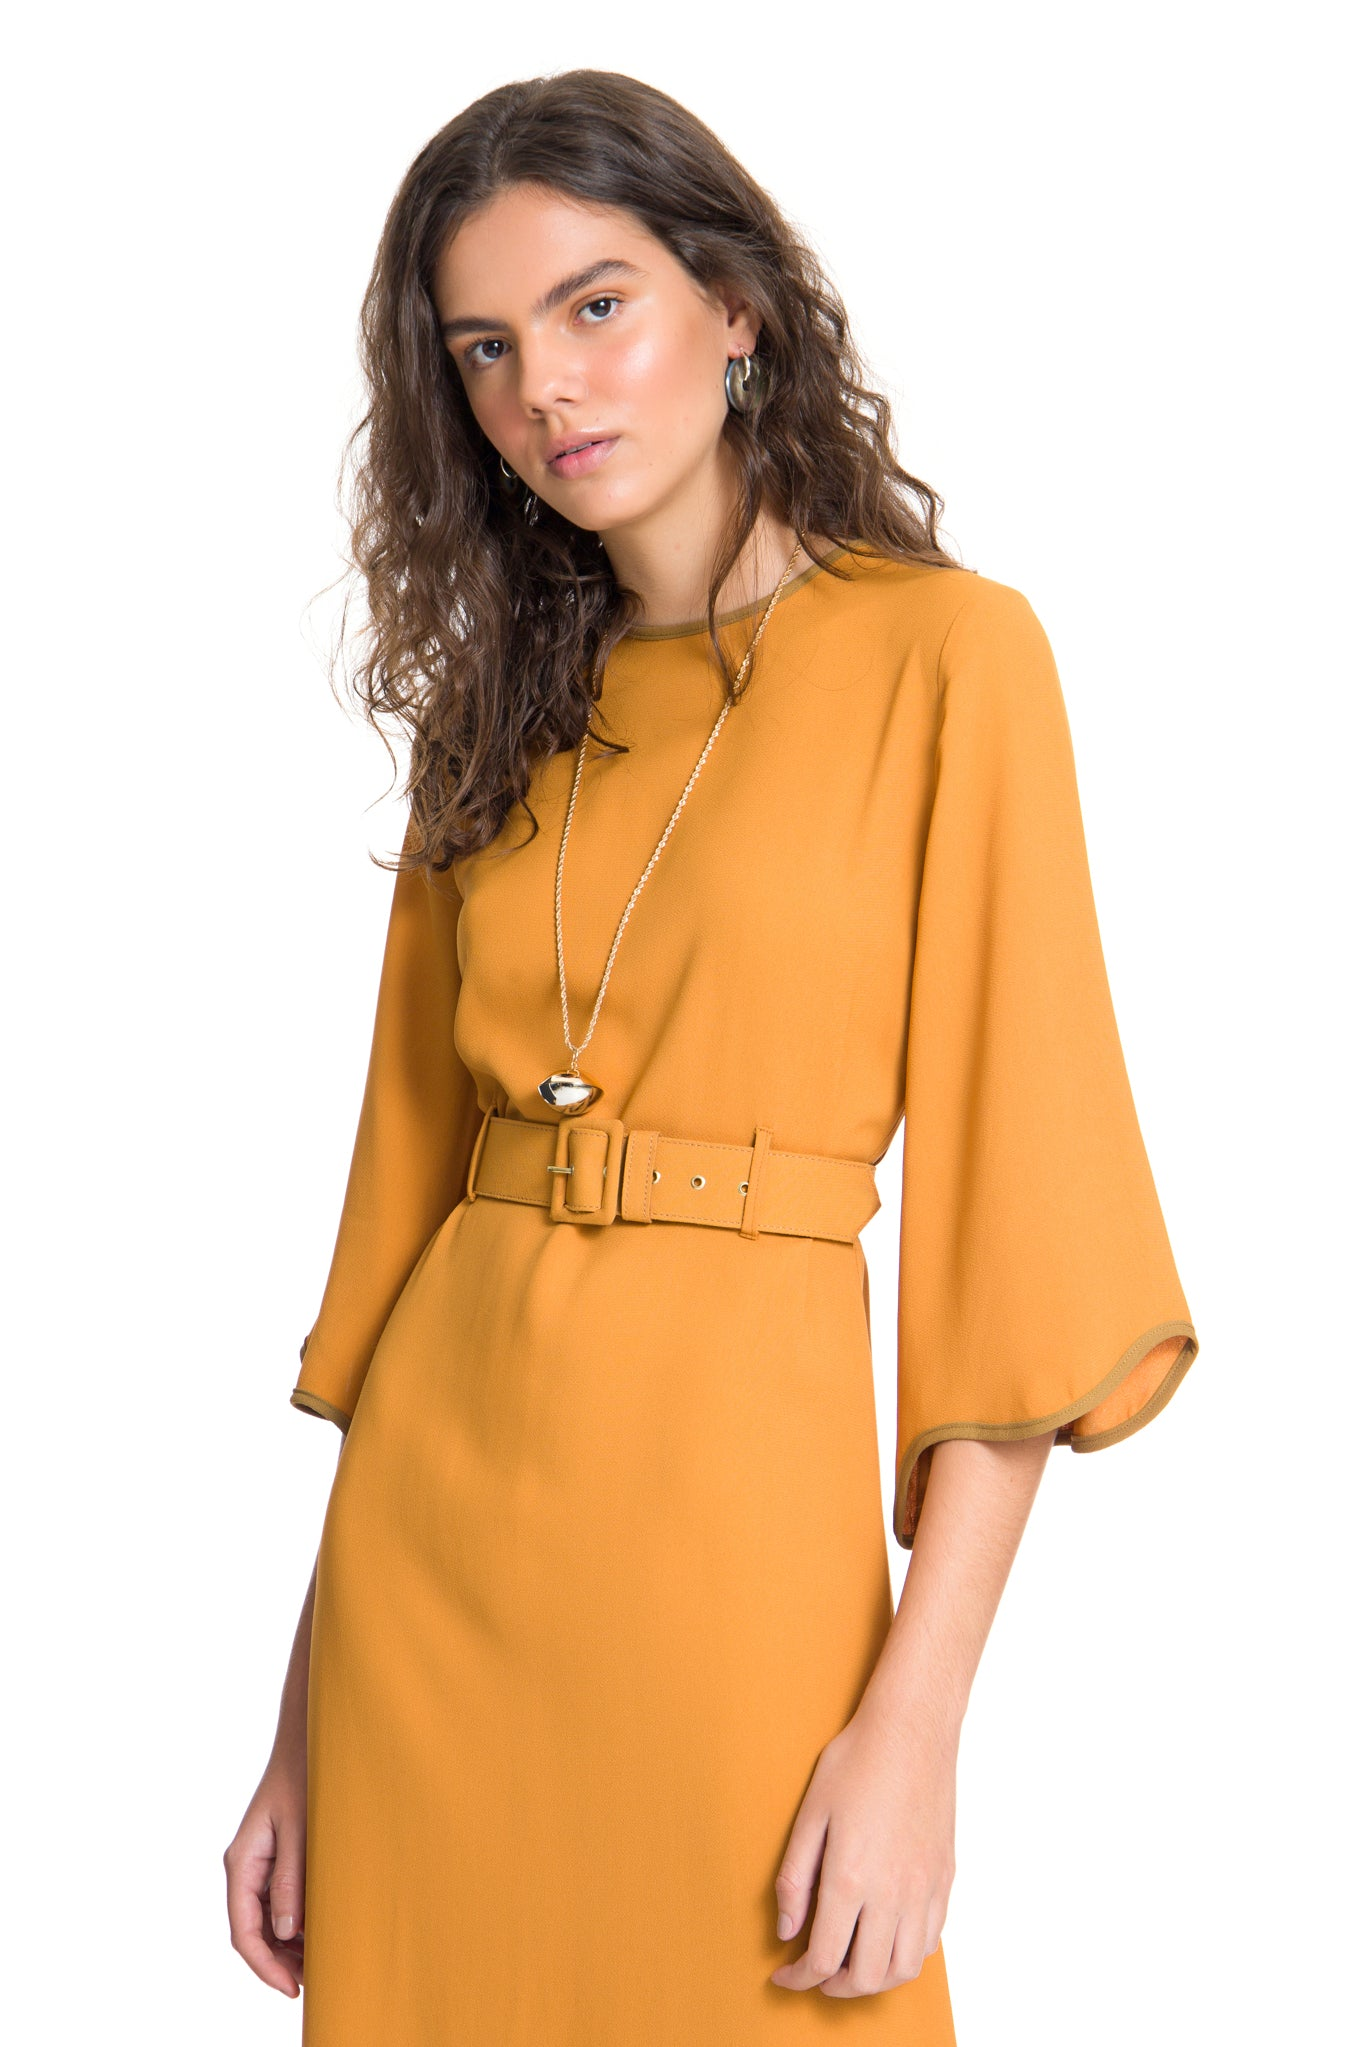 CARAMELO/ CAMELO LUCY DRESS